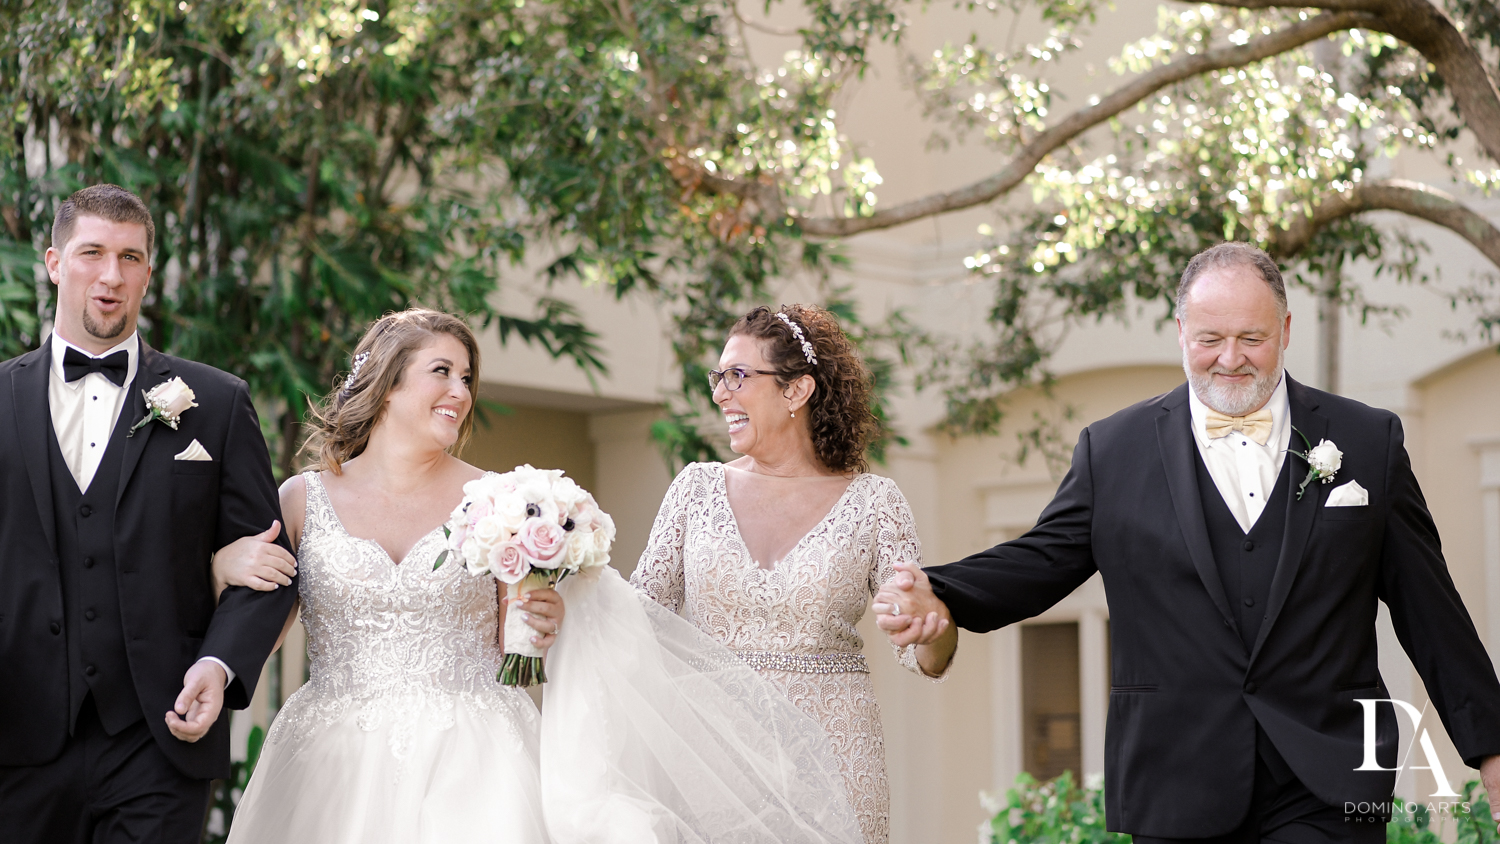 Candid family pictures at Romantic Outdoors Wedding at Woodfield Country Club in Boca Raton, Florida